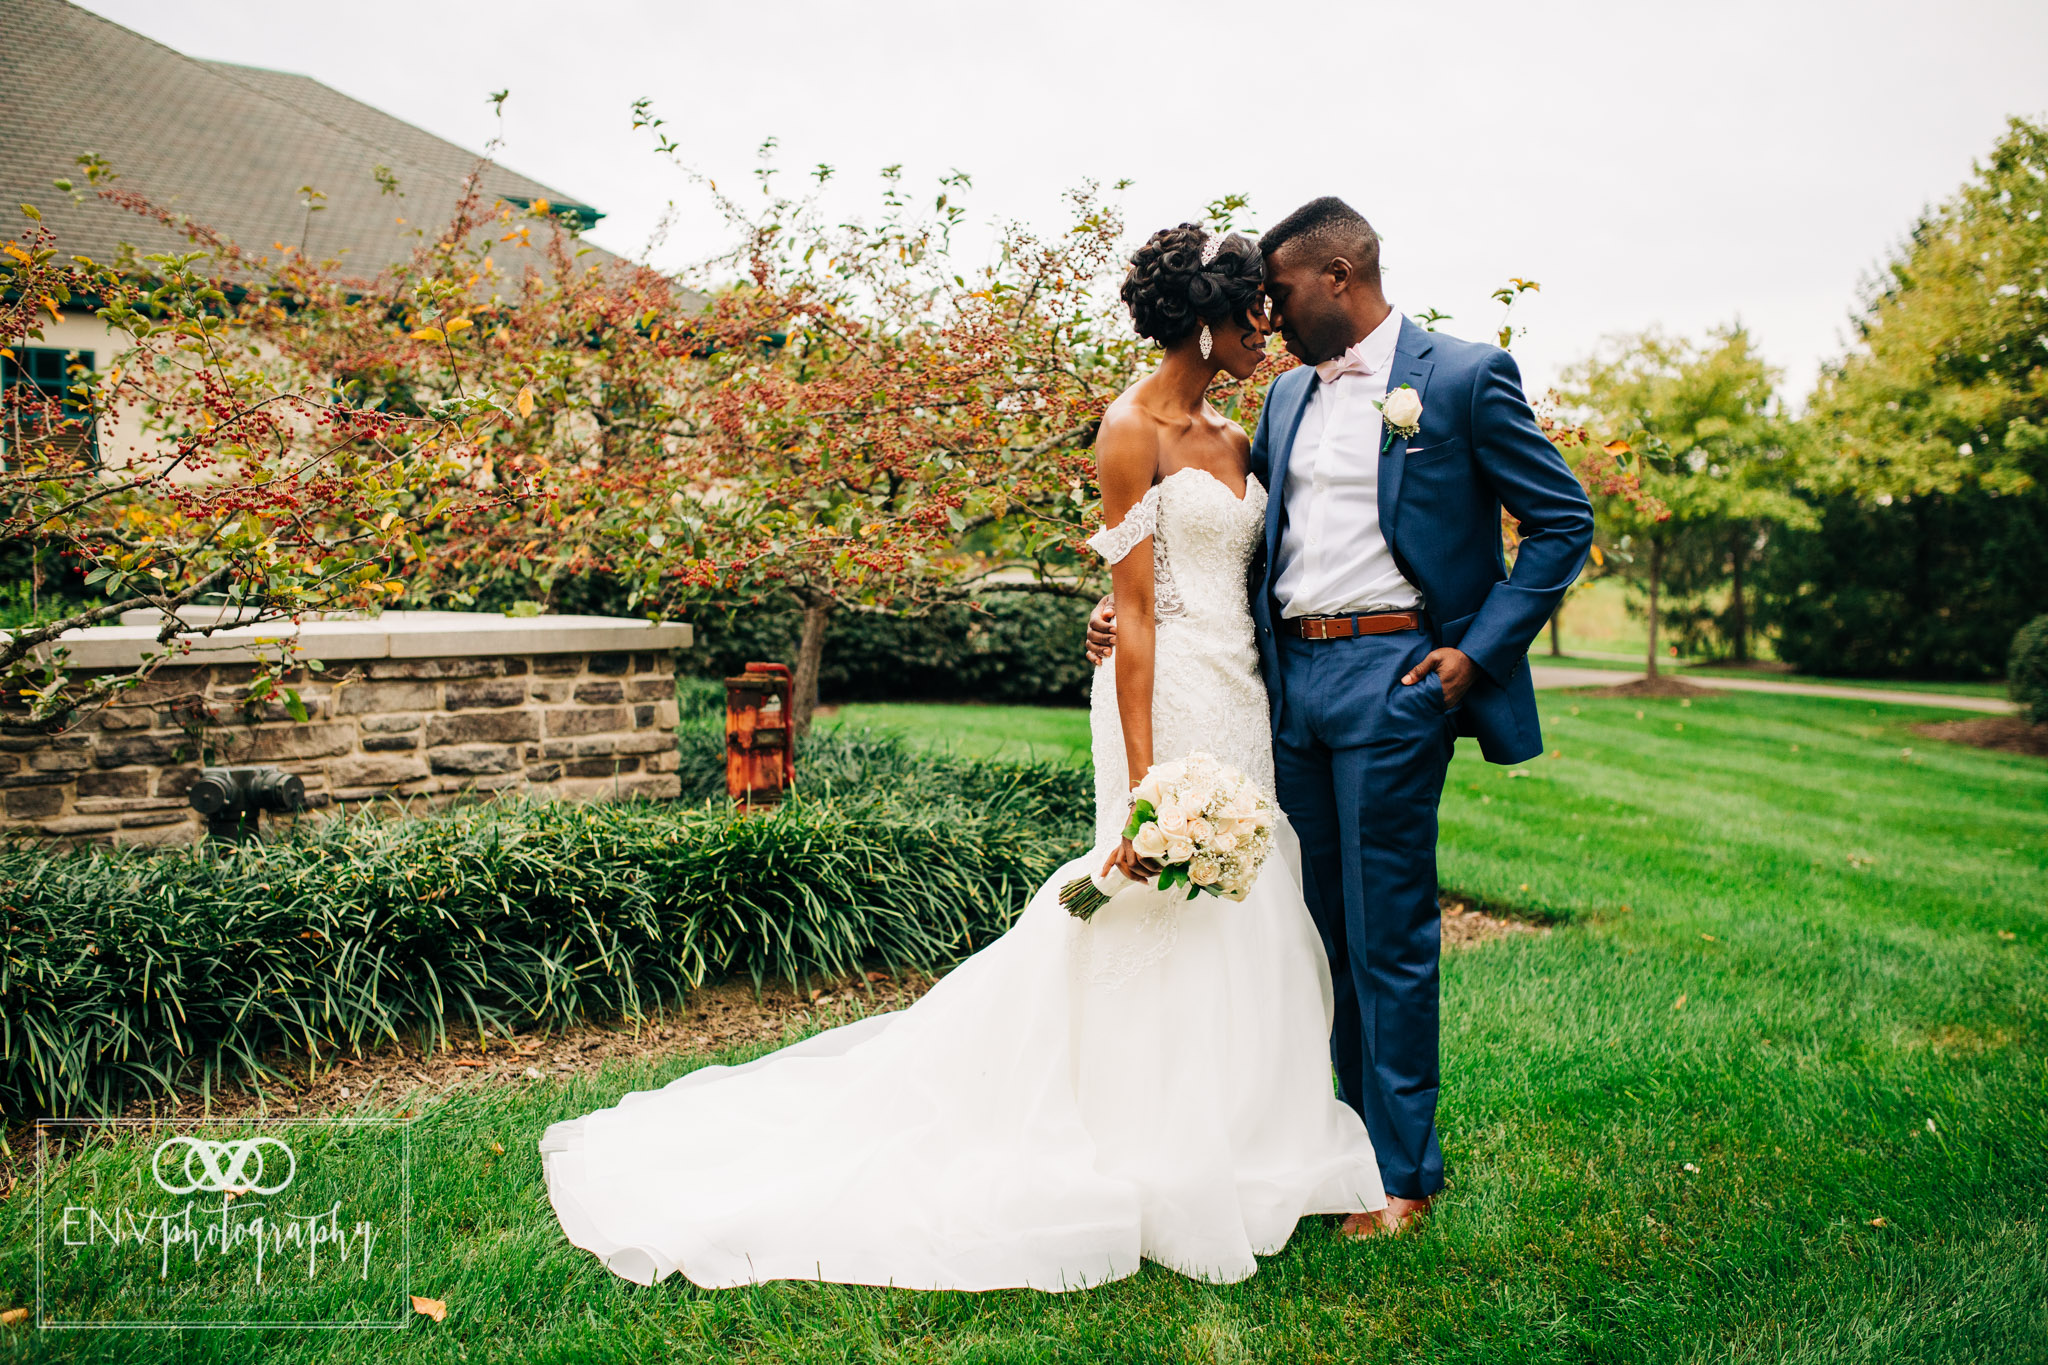 Columbus ohio medallion wedding photographer 2018 (18).jpg